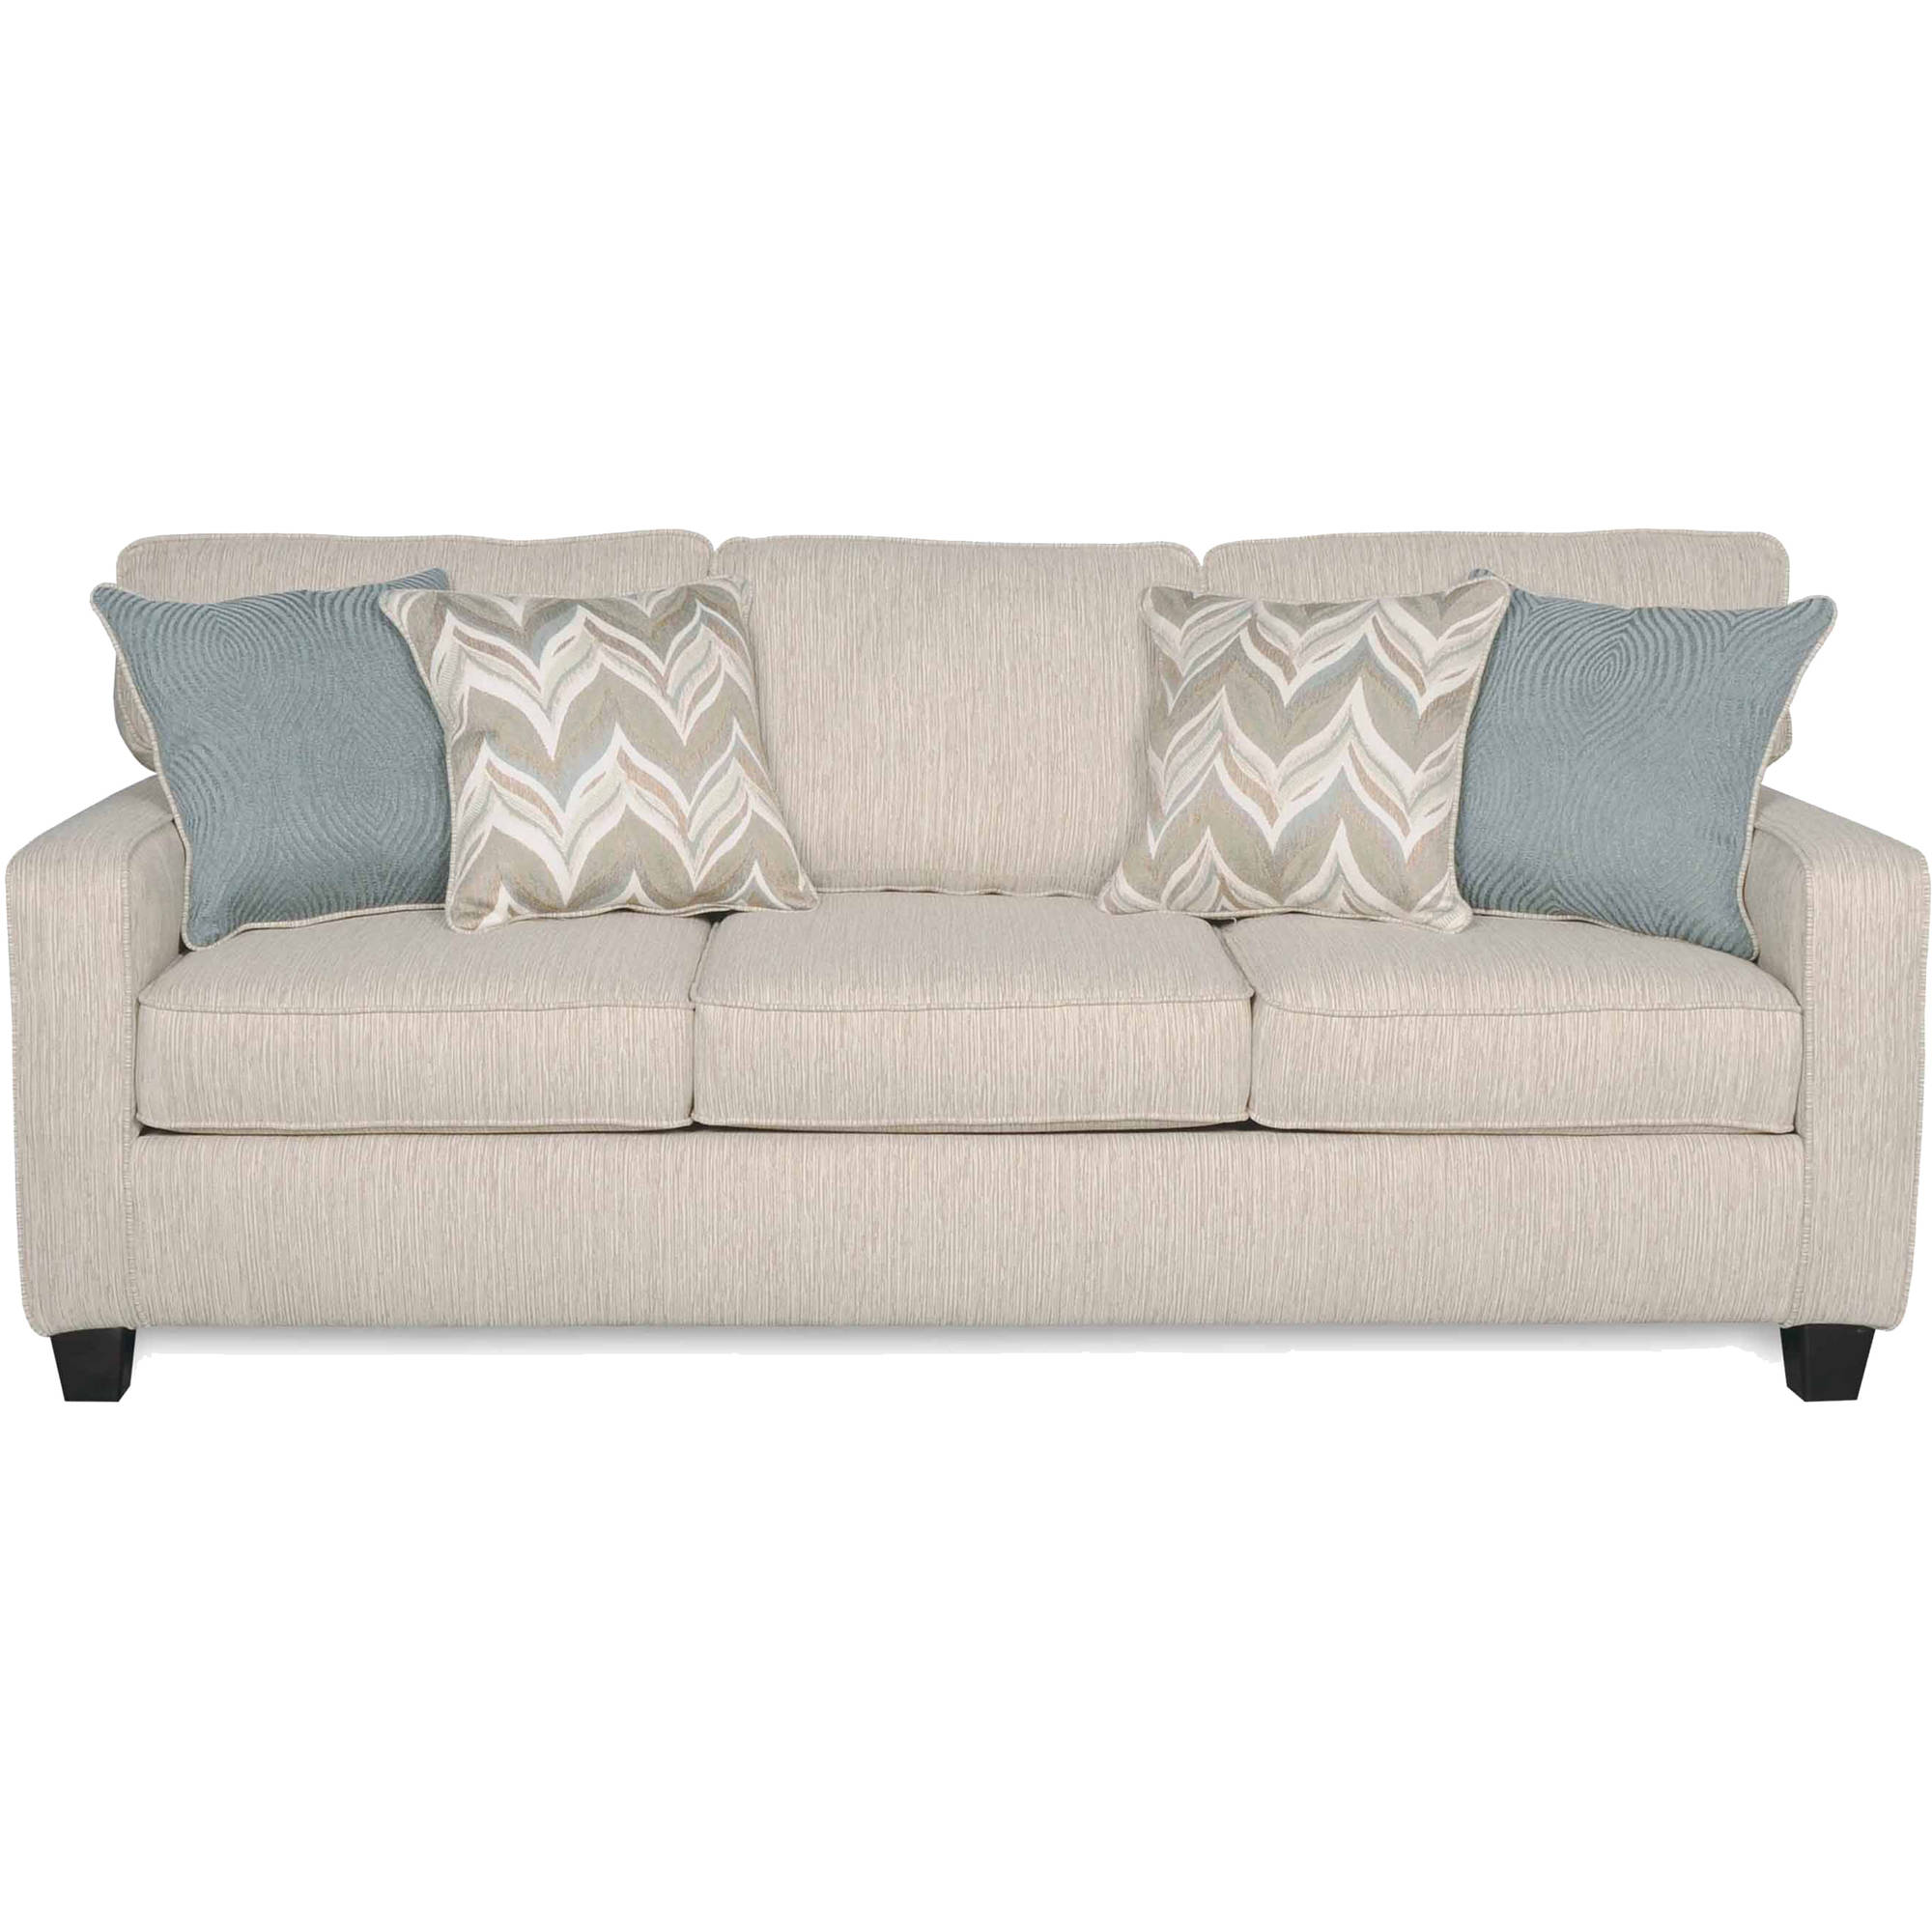 SoFab Austin Almond Three Seat Sofa With 4 Accent Pillows   Walmart.com